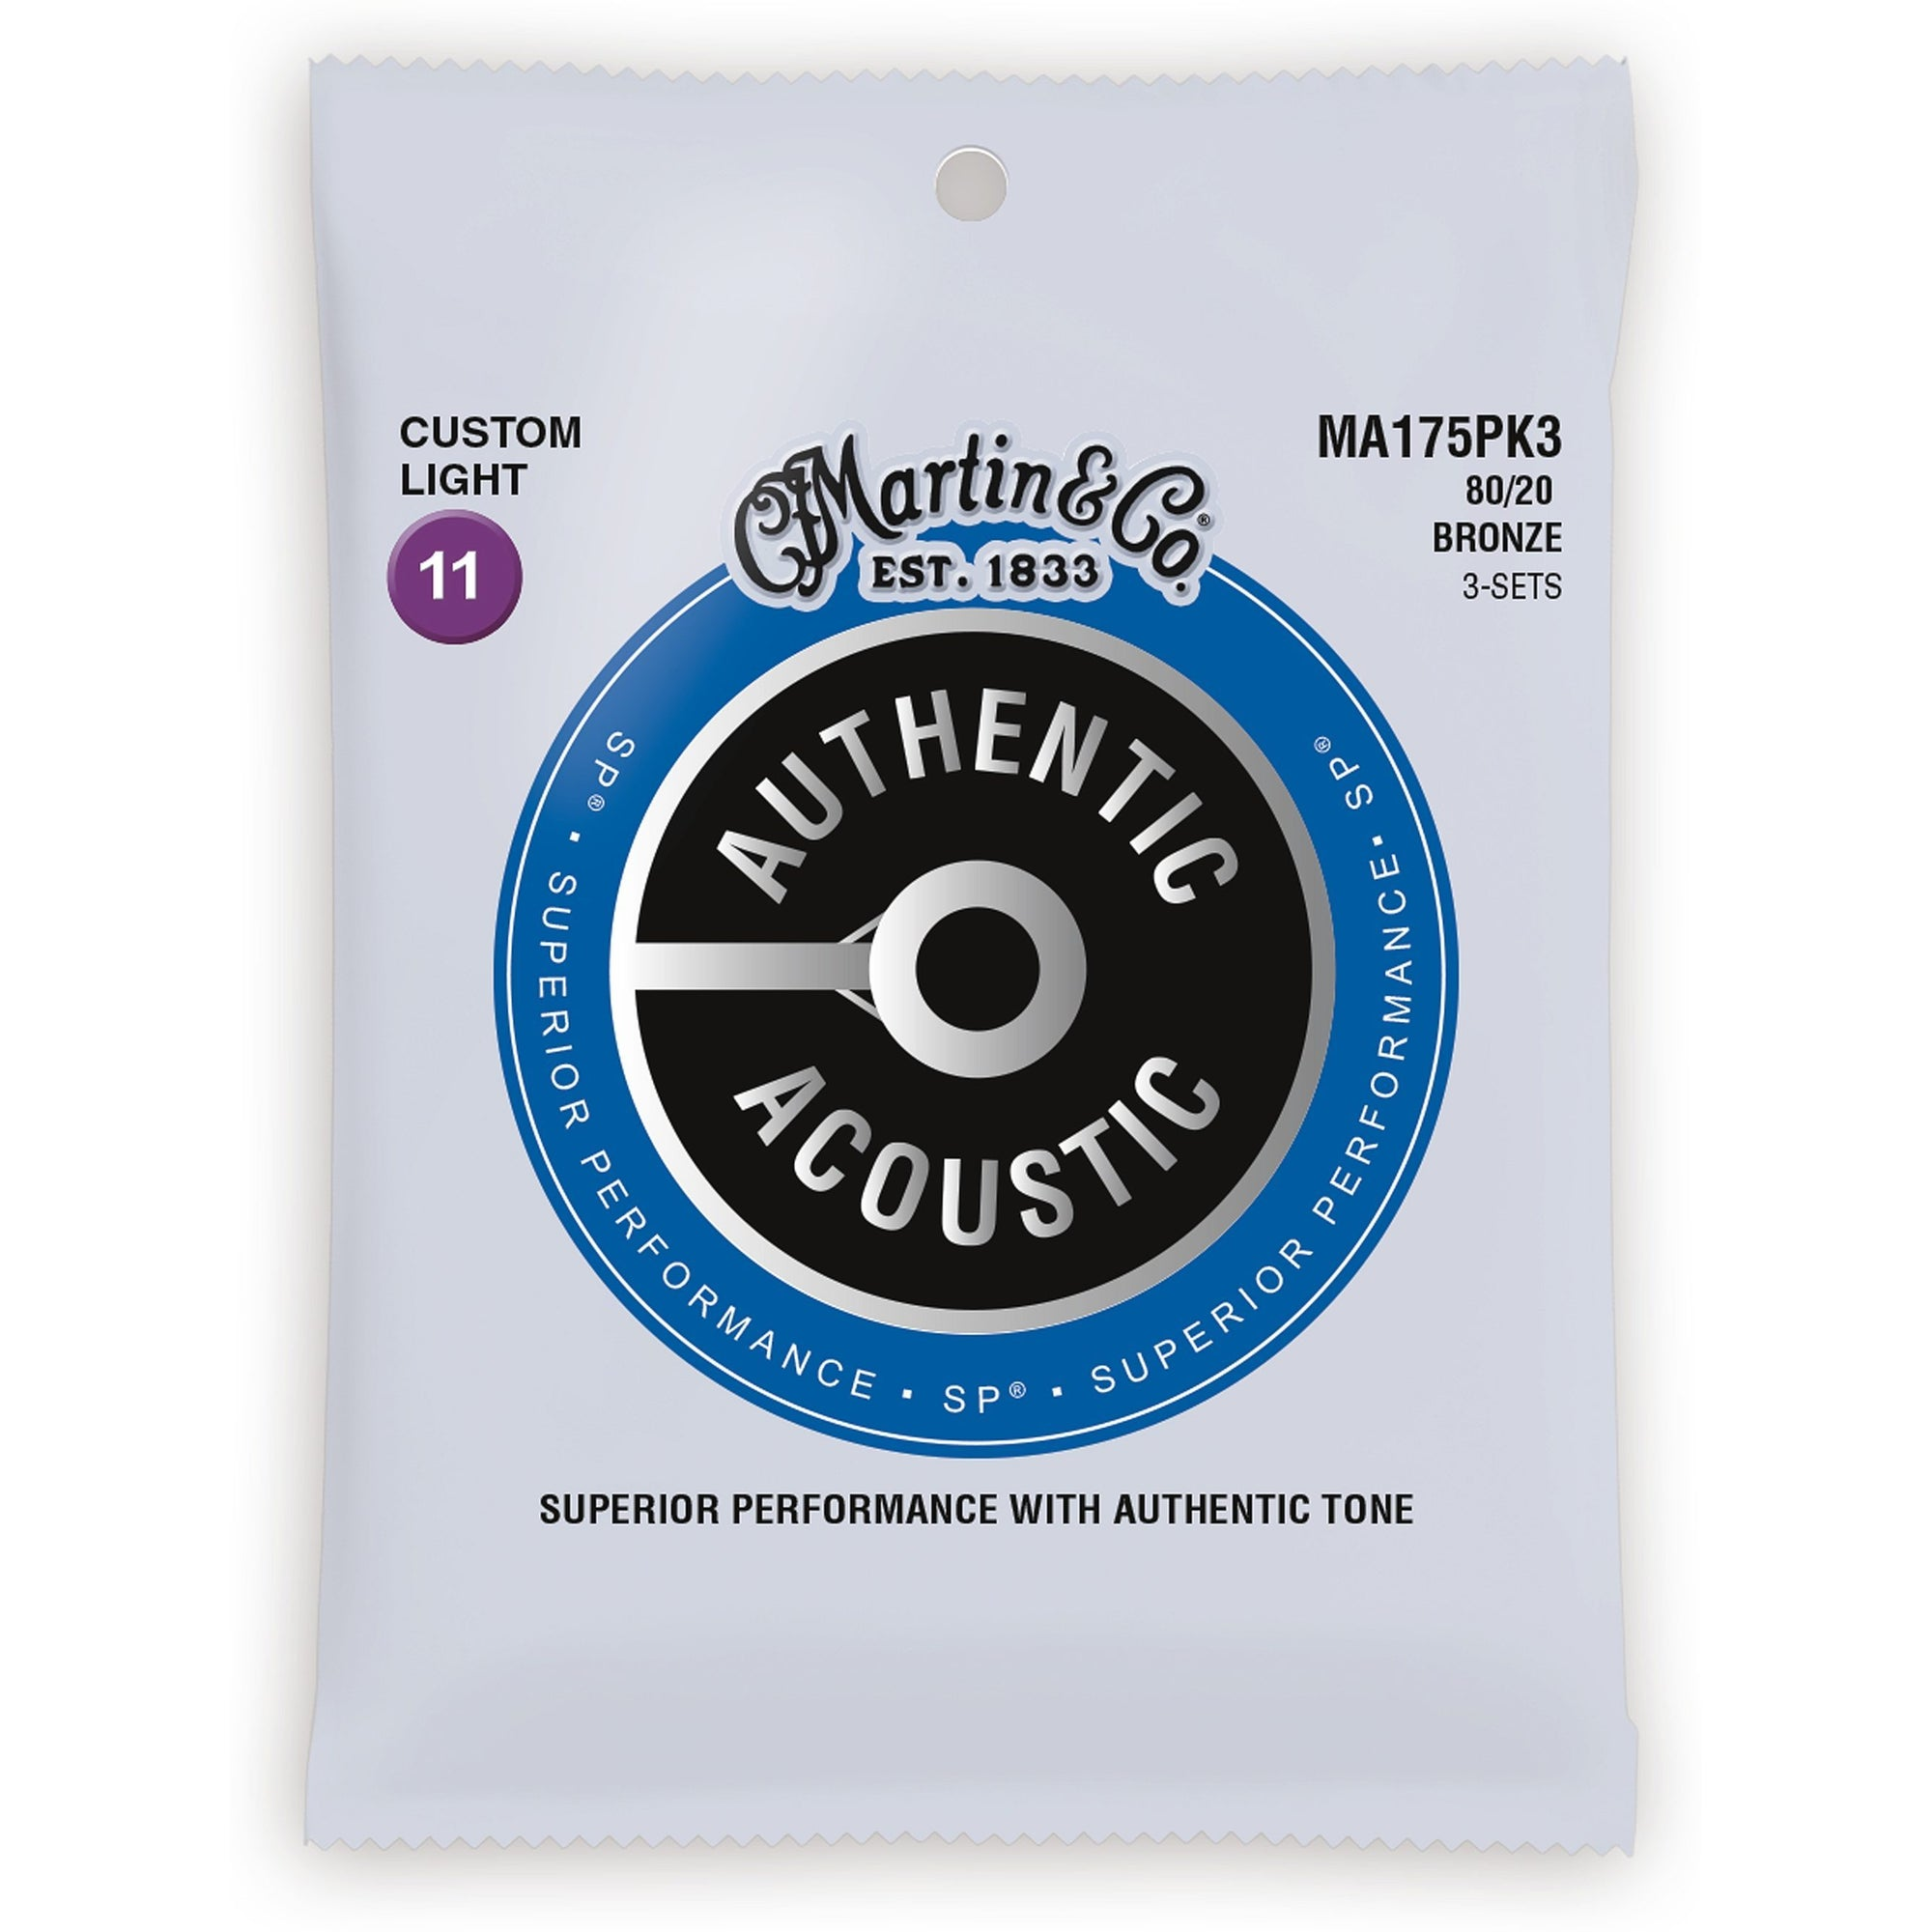 Martin Authentic SP 80/20 Bronze Acoustic Guitar Strings, MA175, 3-Pack, Custom Light